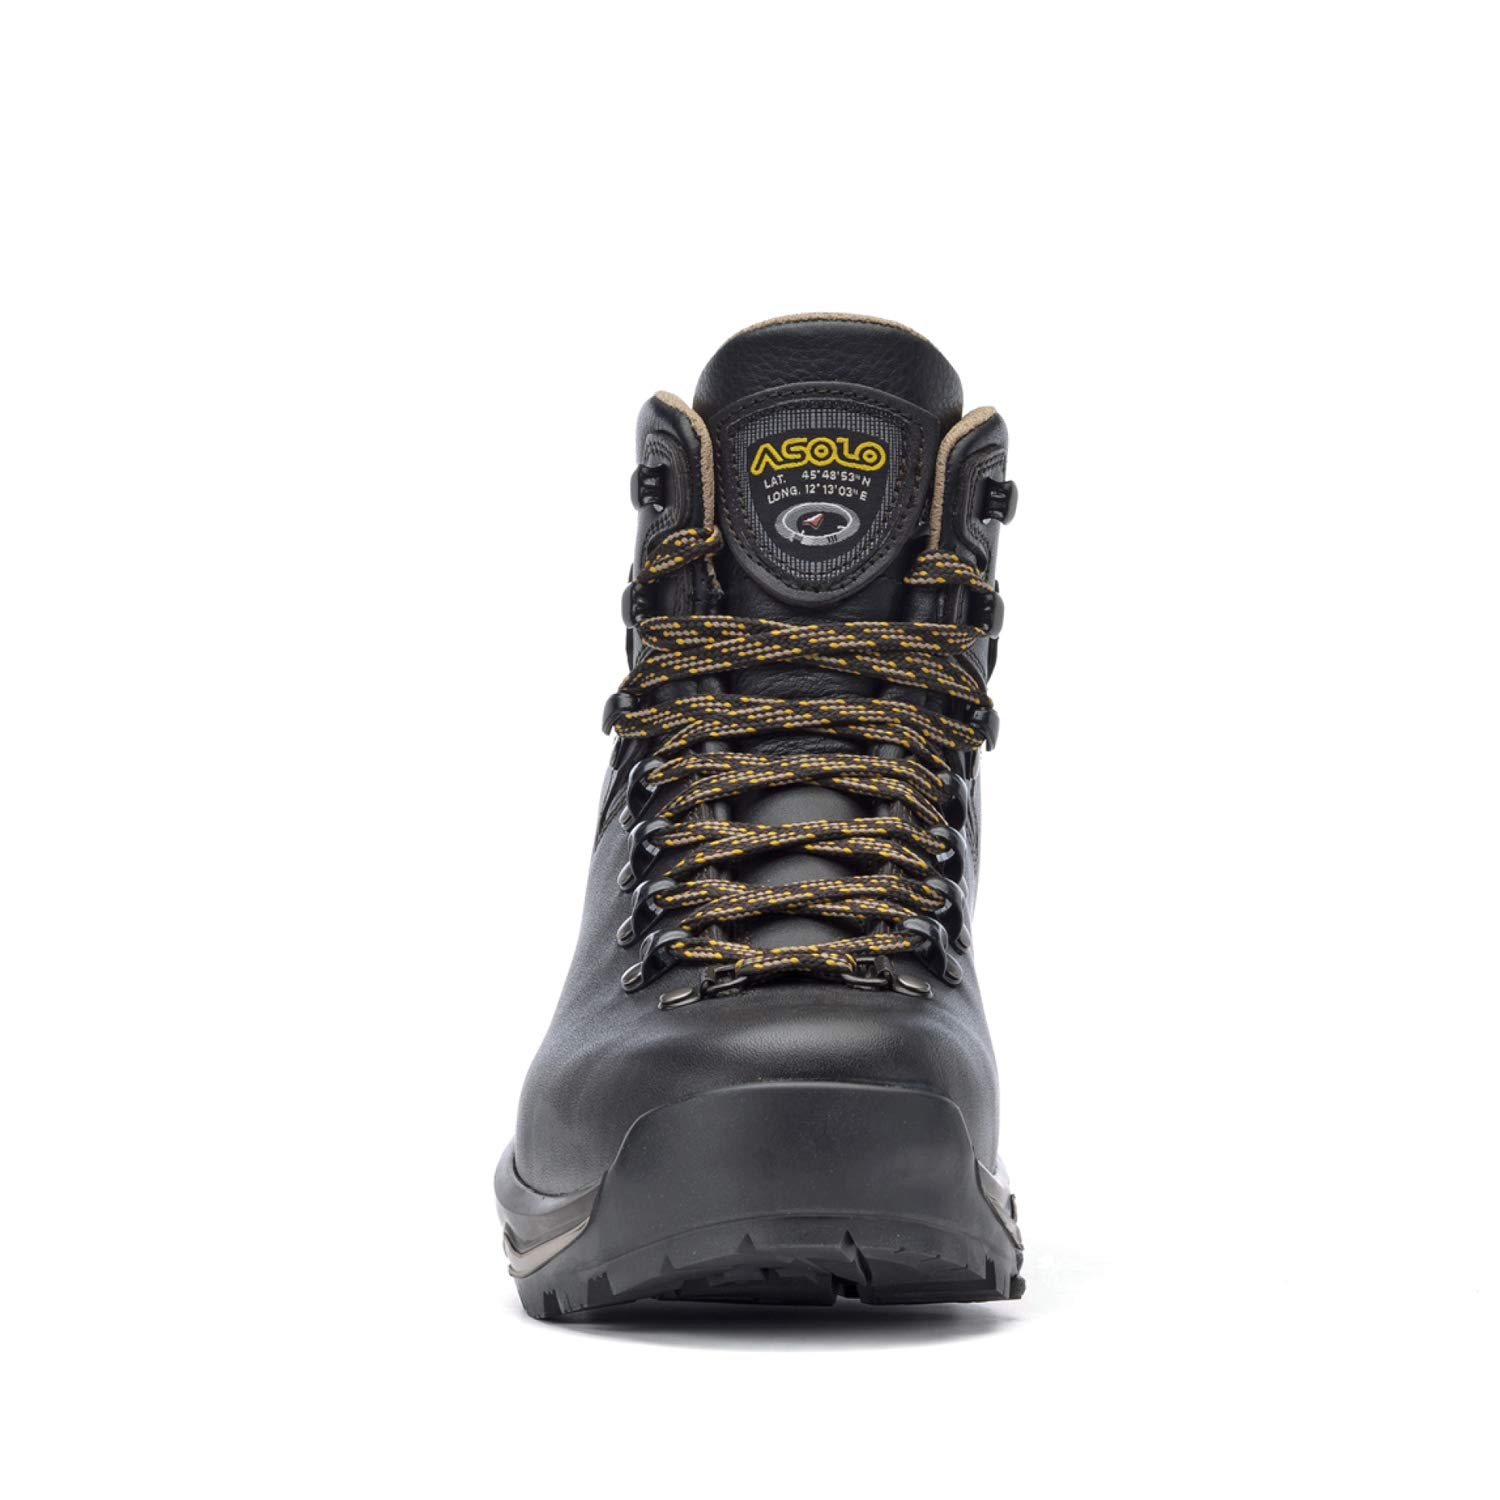 and Long Distance Hiking Asolo TPS 535 LTH V EVO Mens Waterproof Hiking Boot for Backpacking Technical terrains